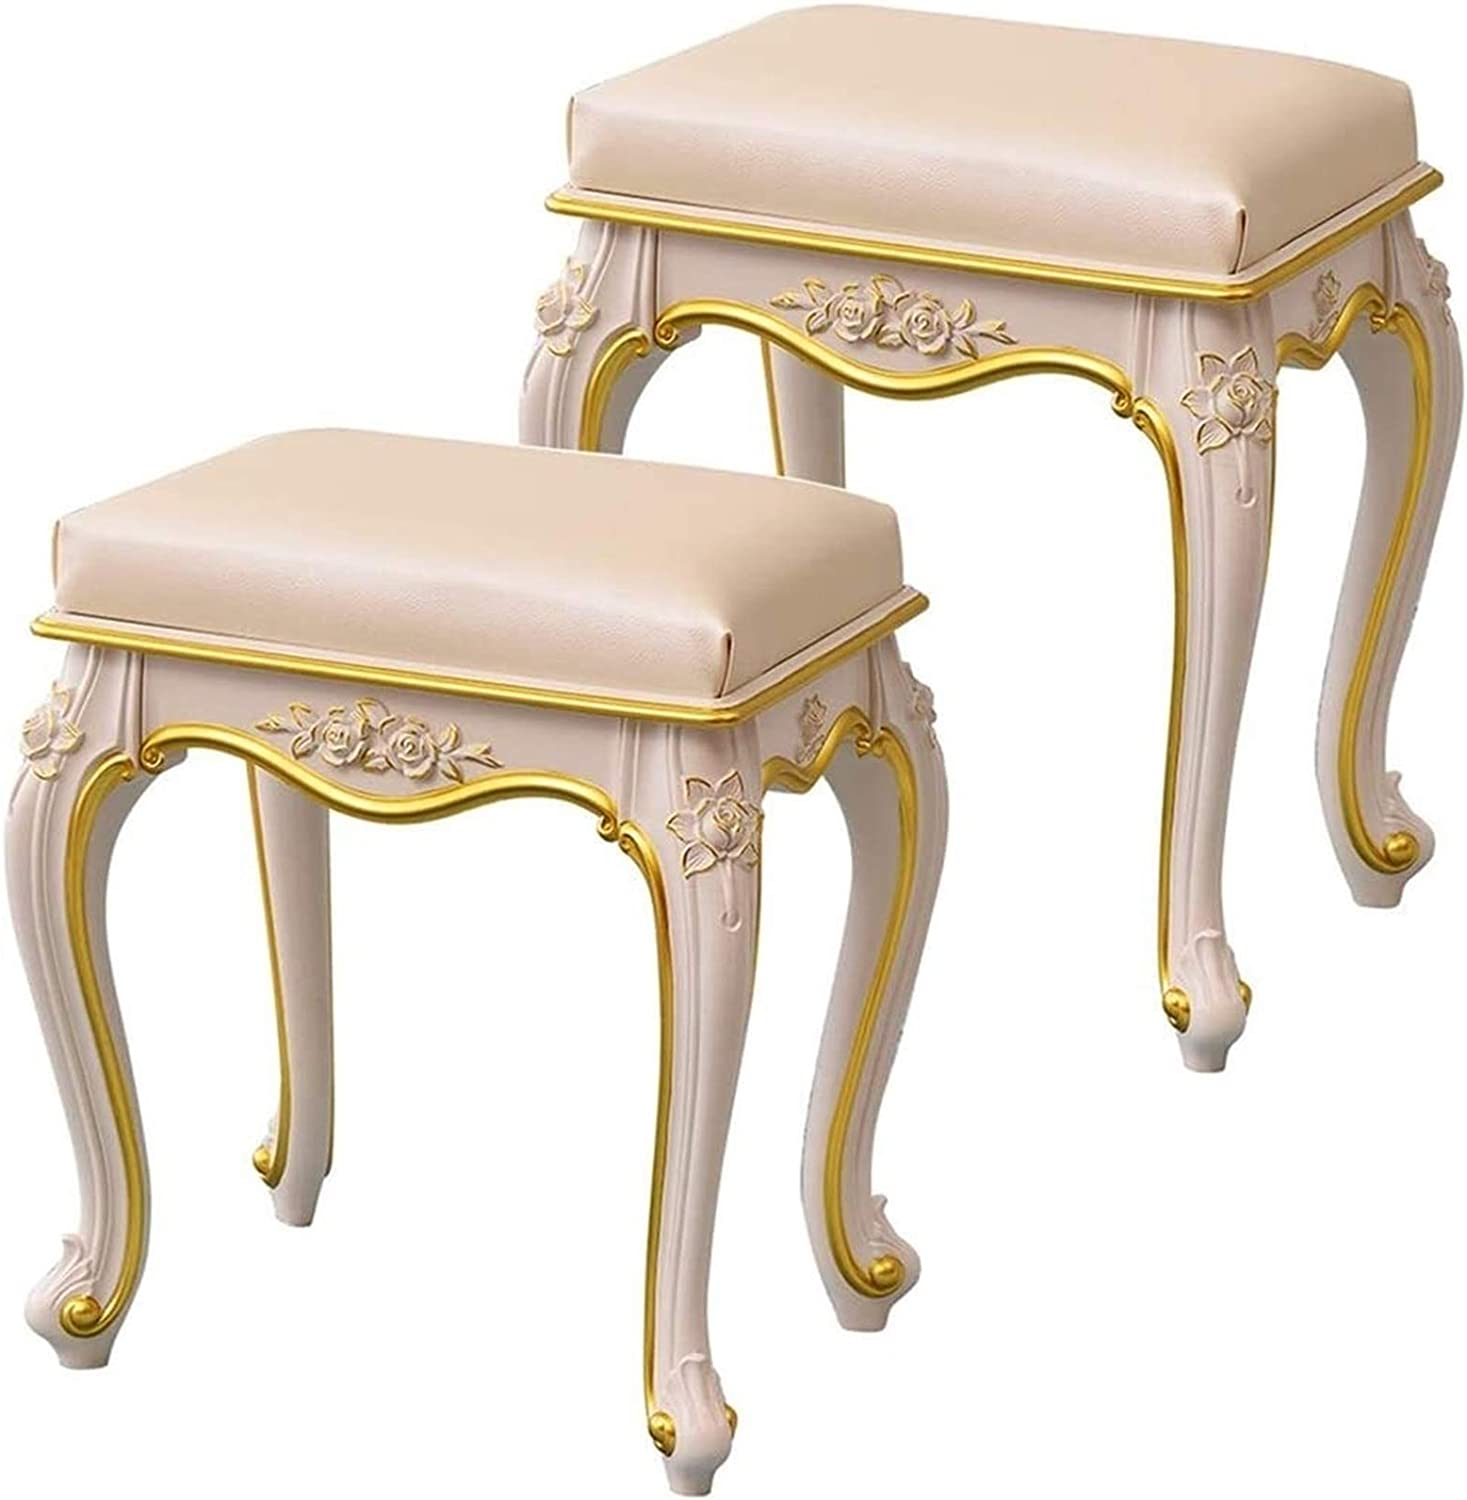 Max 72% OFF WEIJINGRIHUA Foot Stool Complete Free Shipping Footstools Vanity White Make Small